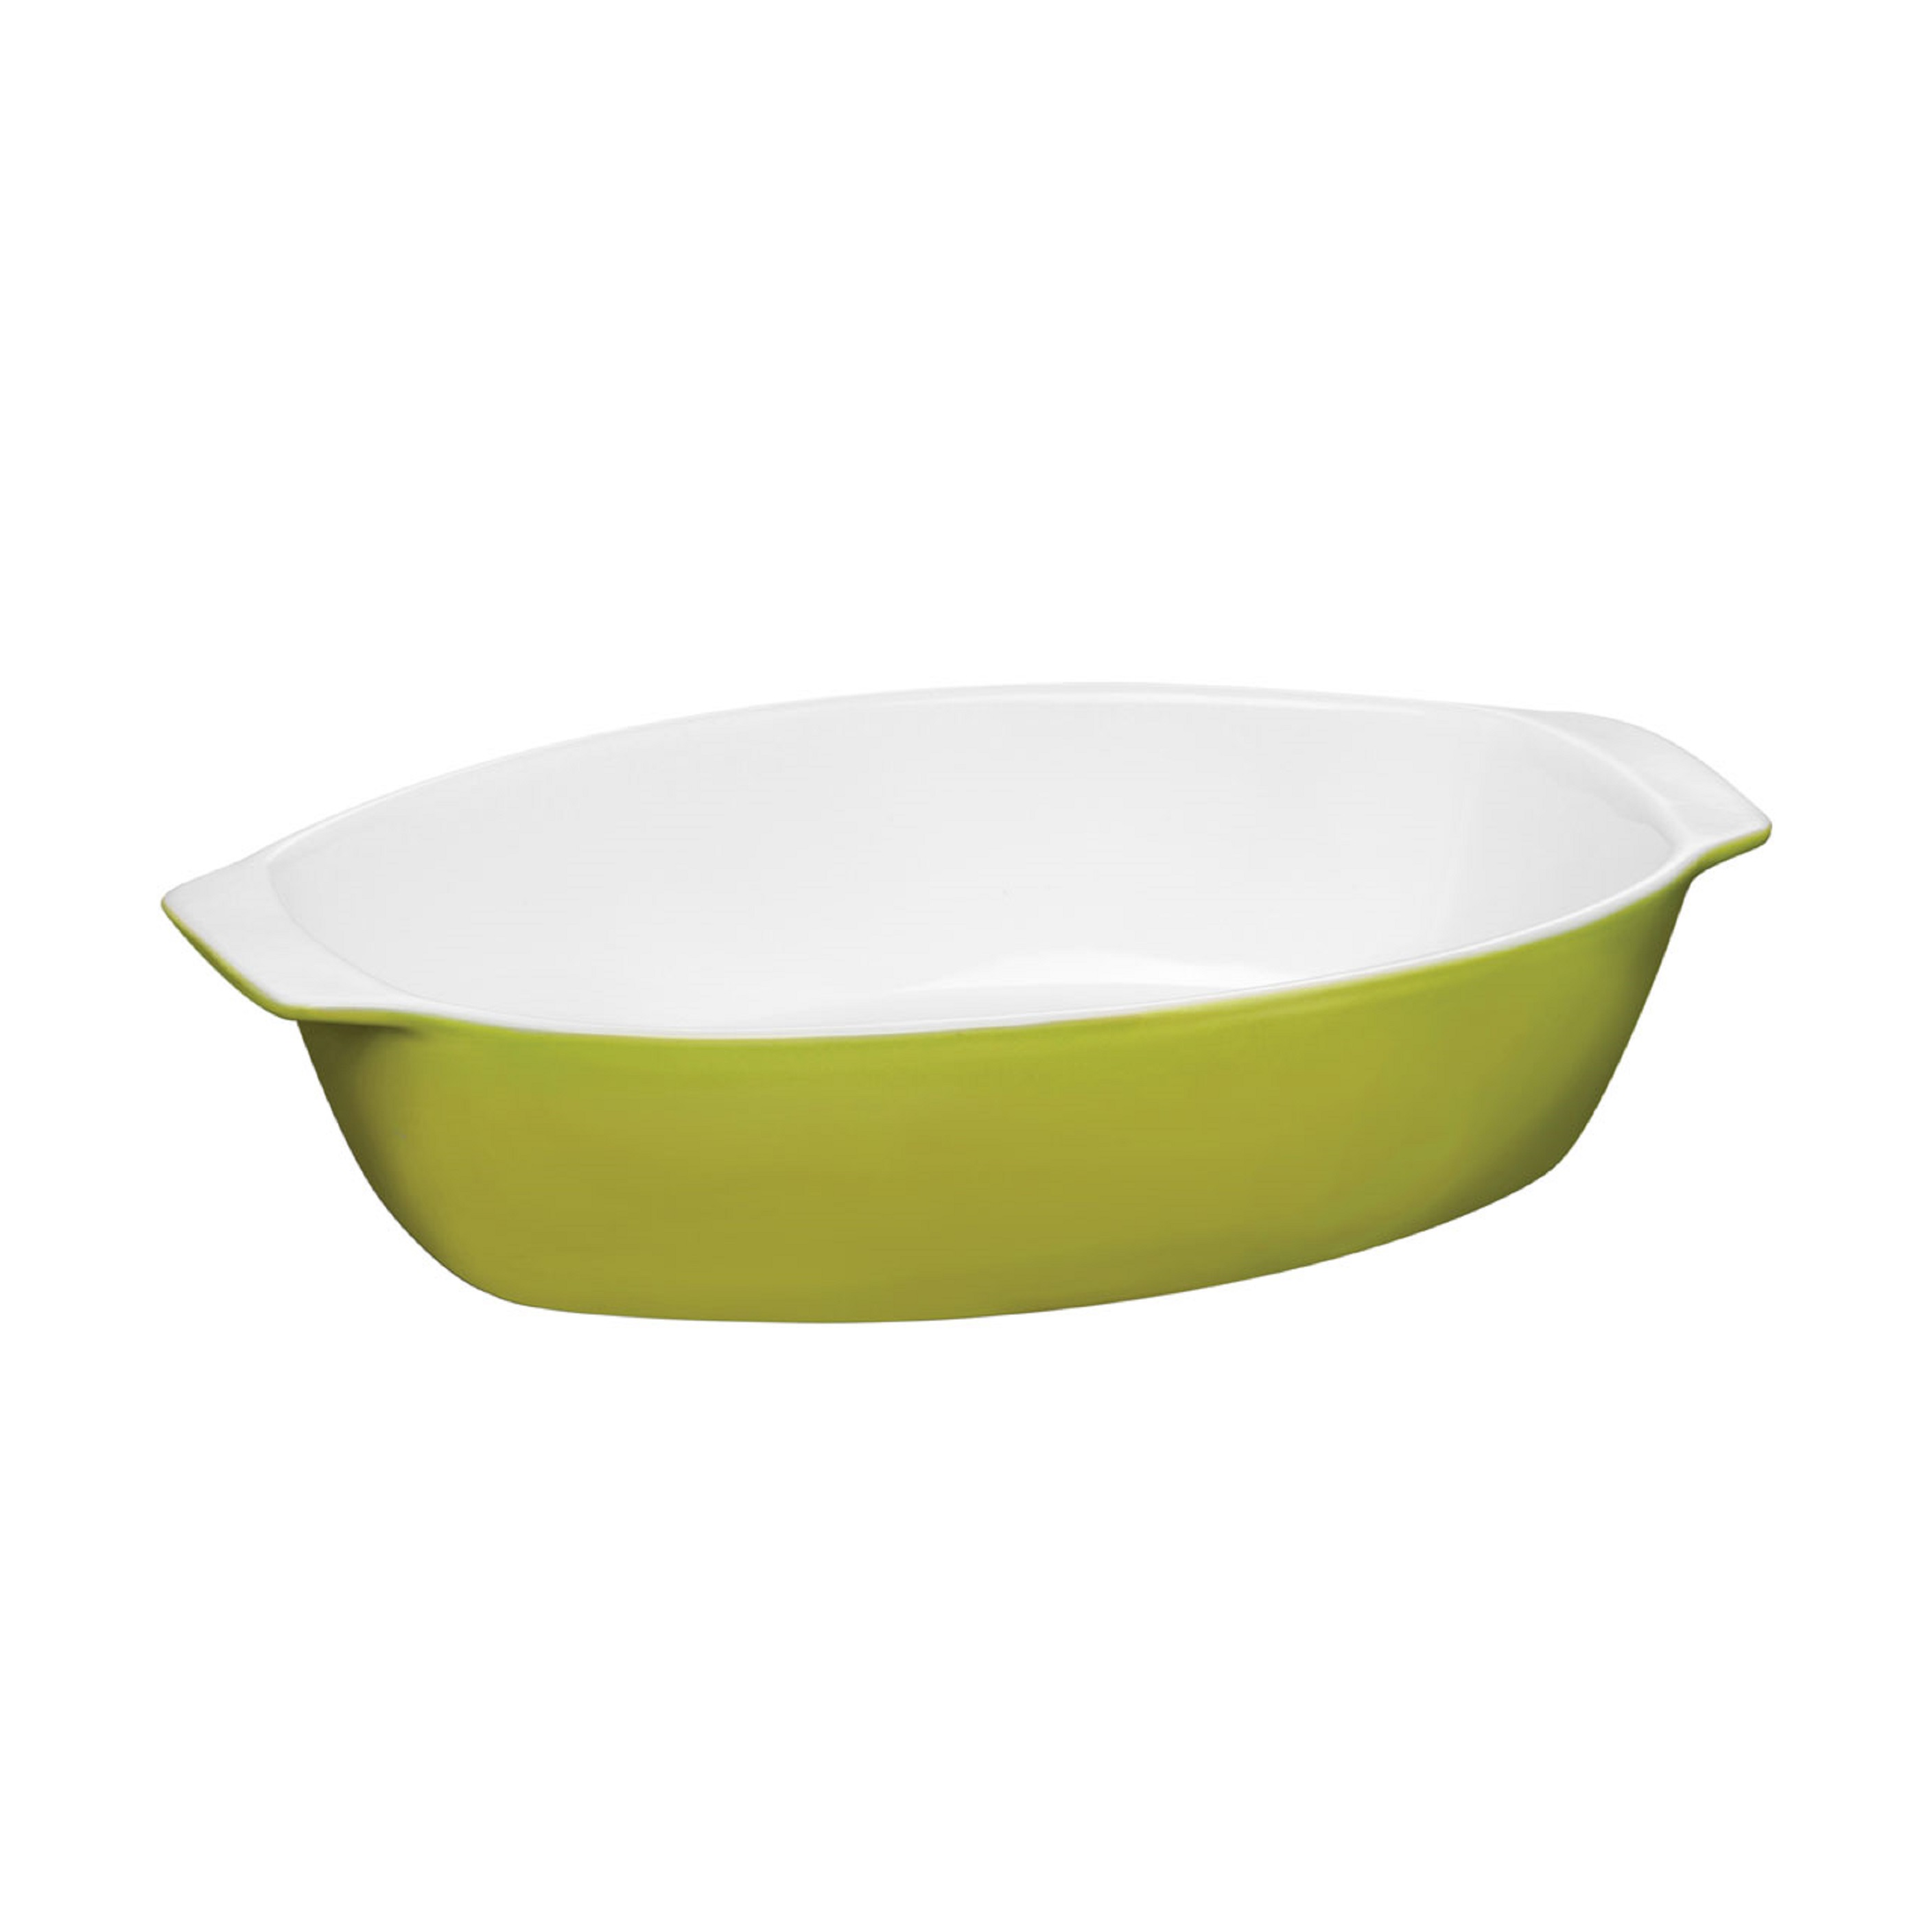 OvenLove Large Baking Dish Lime Green Stoneware